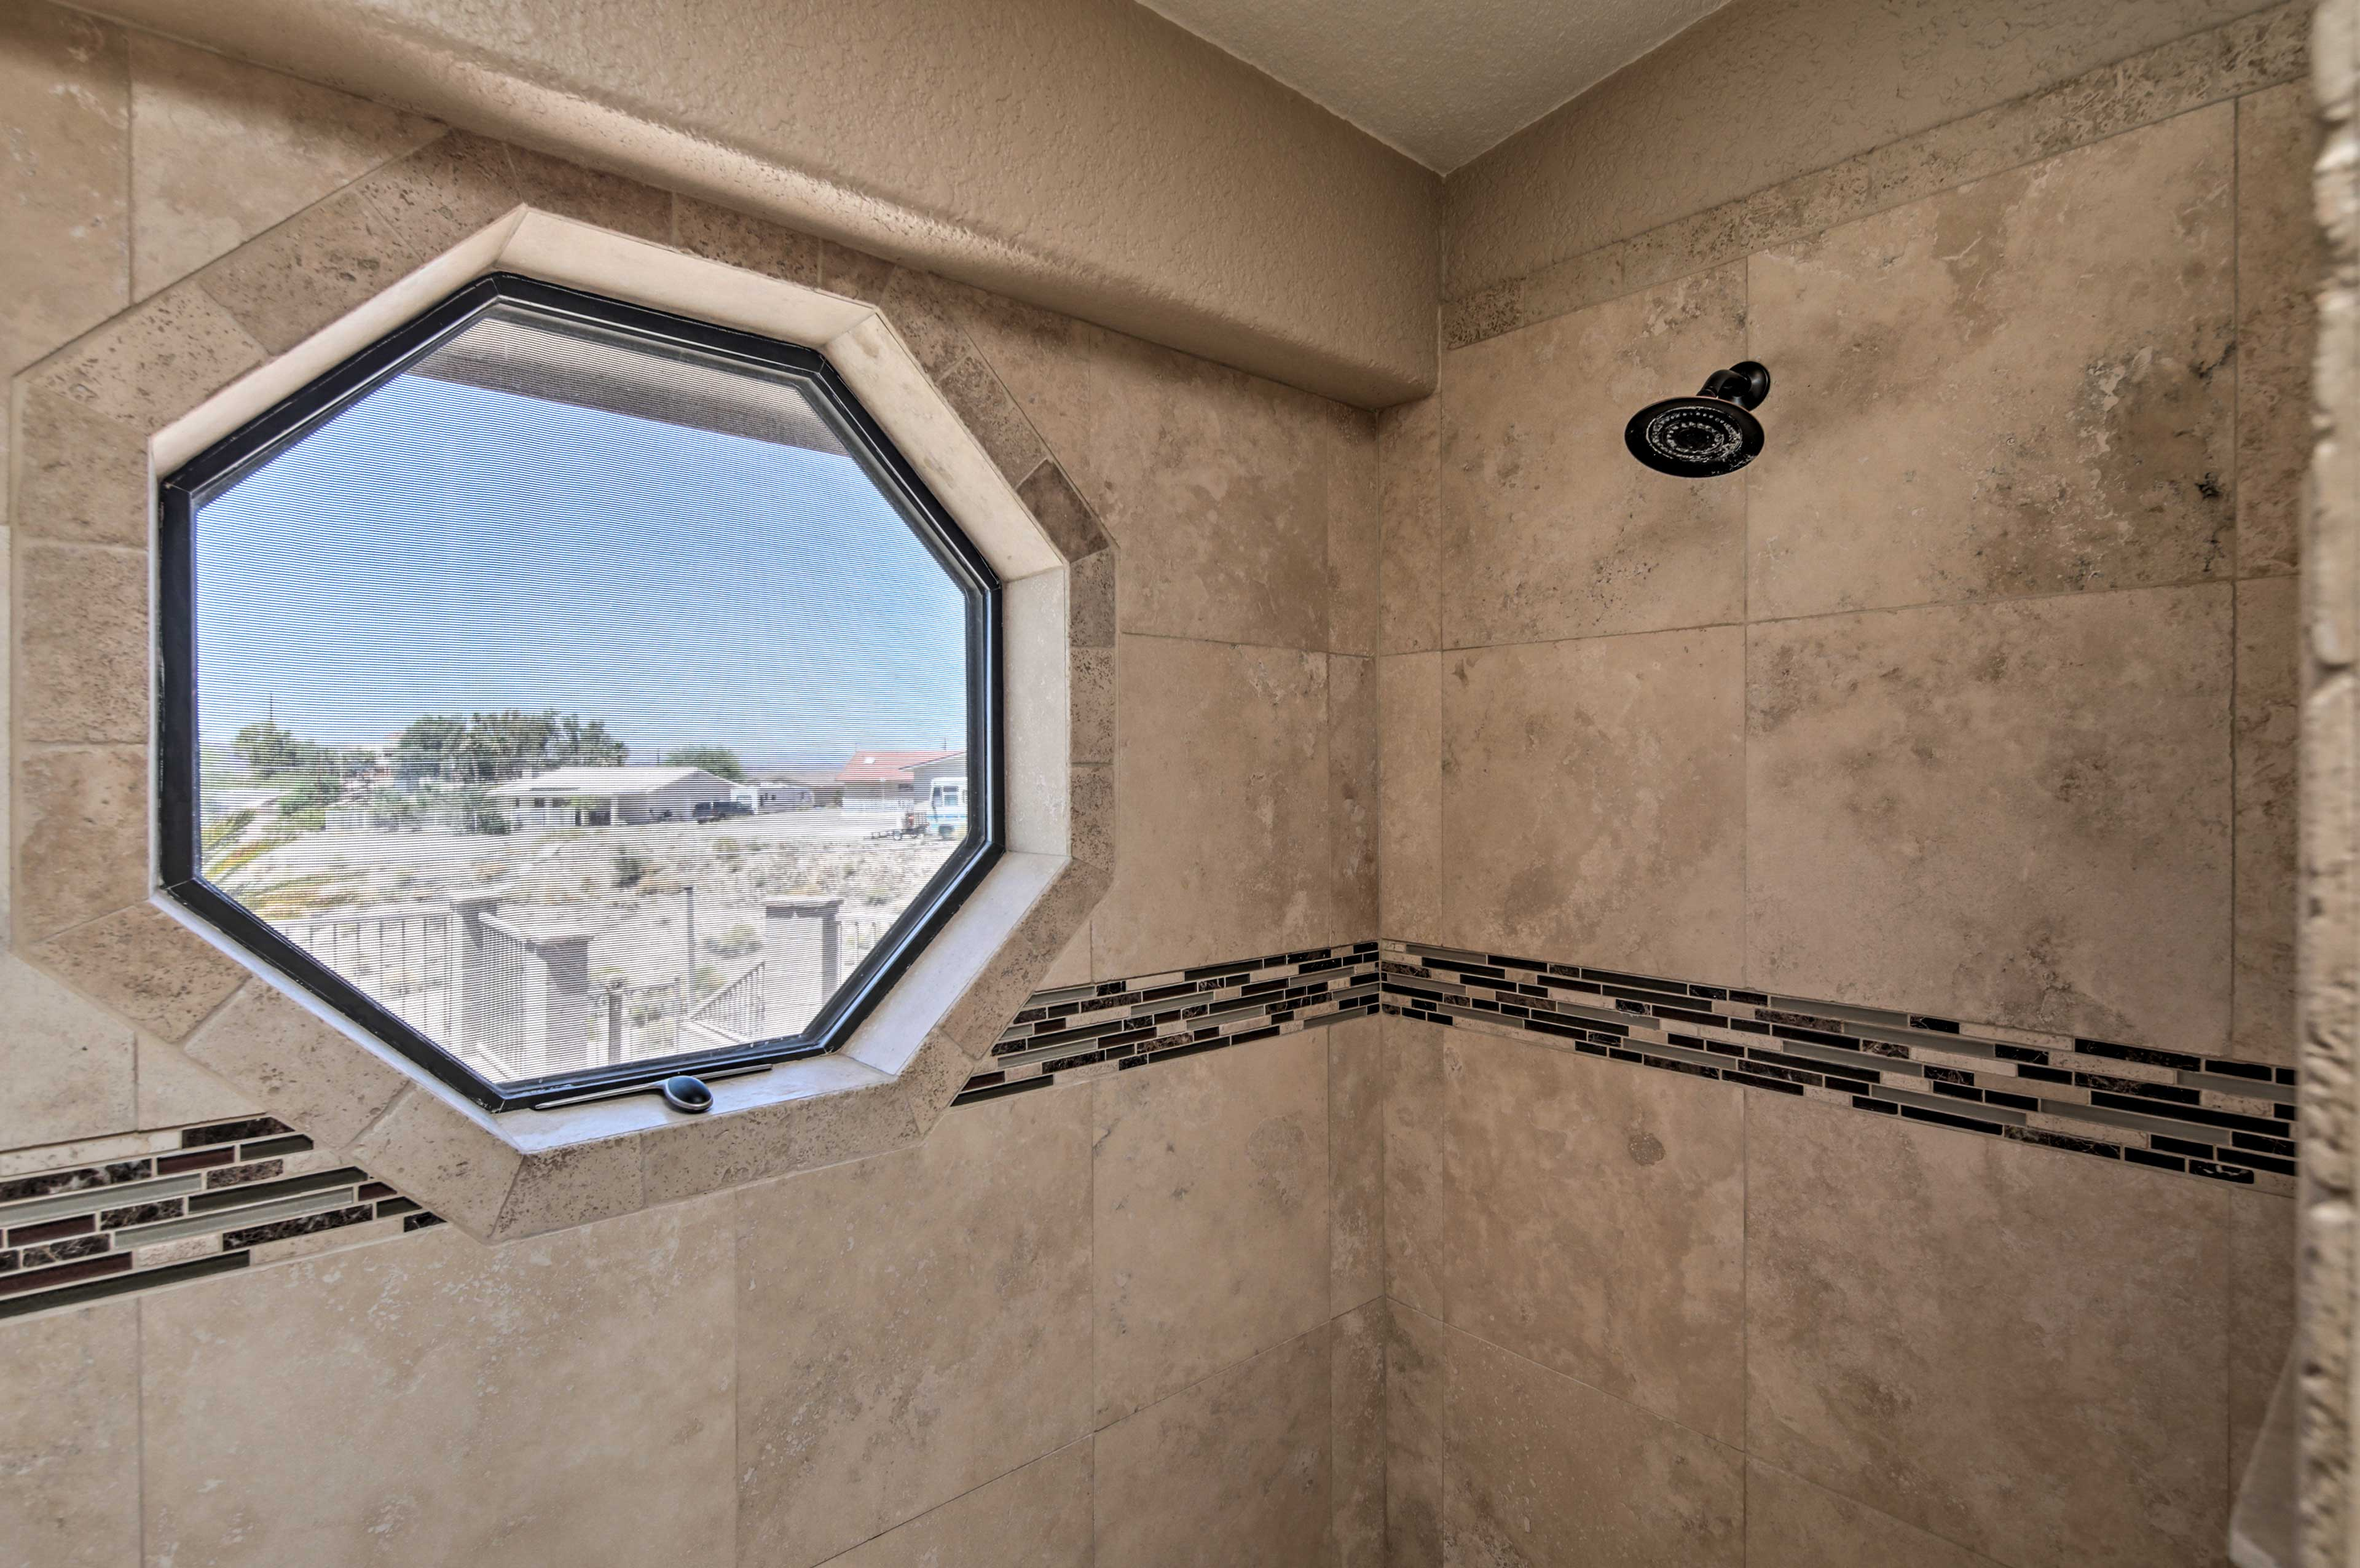 The walk-in shower has its own window!